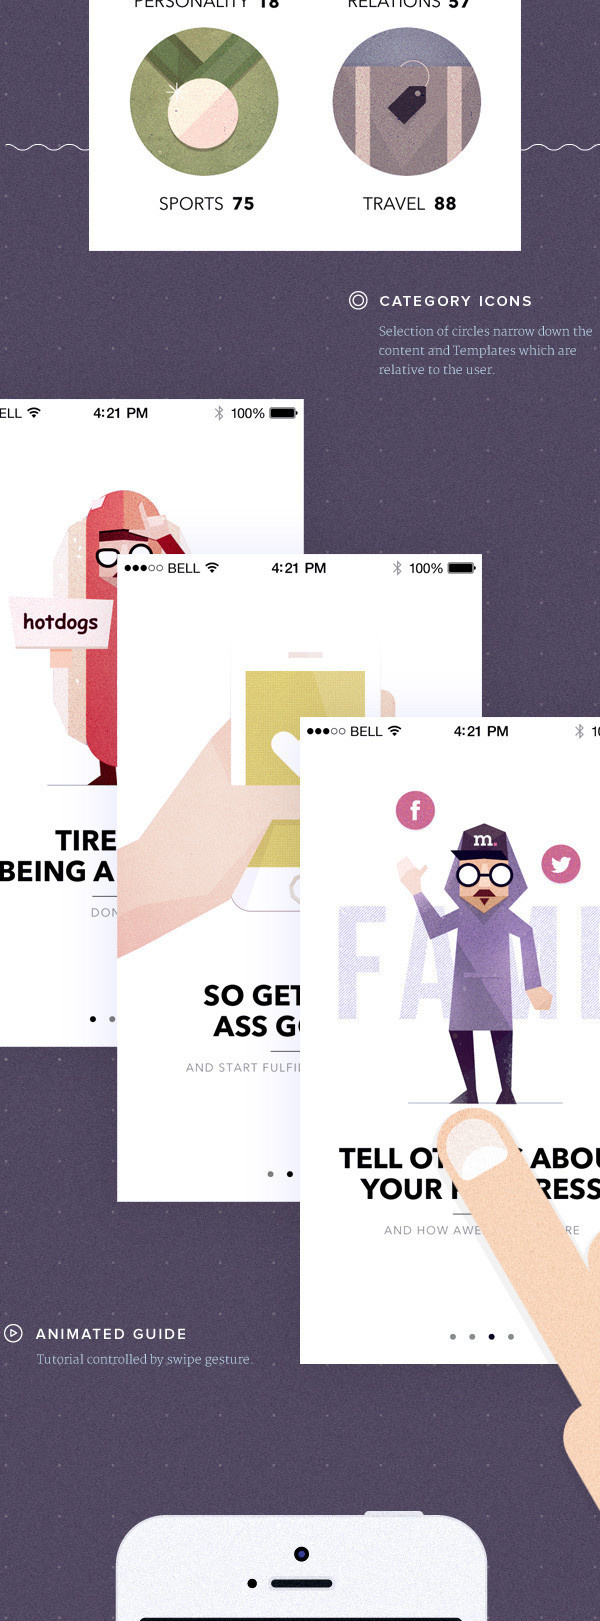 I really really really like the character design and styling of this app explanation. #ux #design #visionare #ui #illustration #app #character